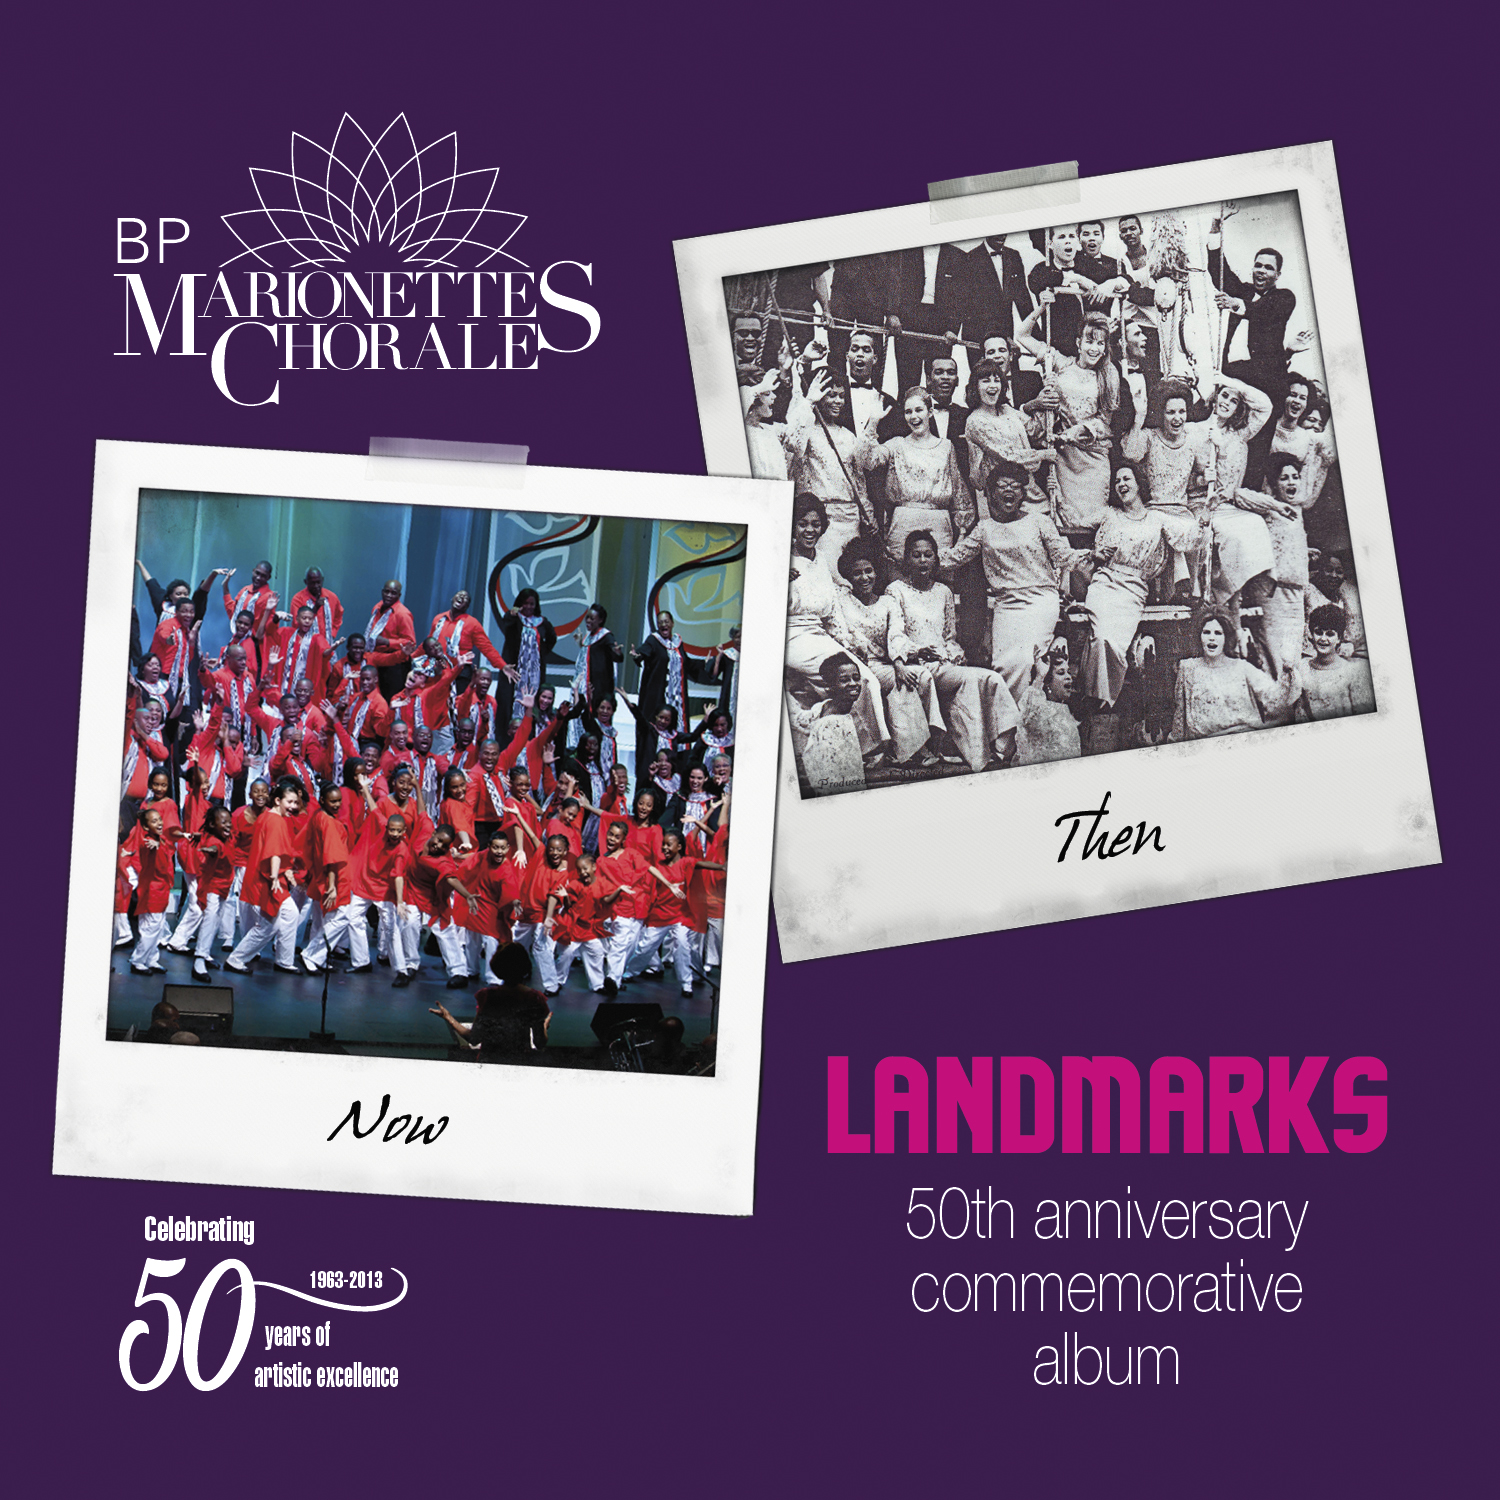 The Marionettes Chorale - Landmarks: 50th Anniversary Commemorative Album